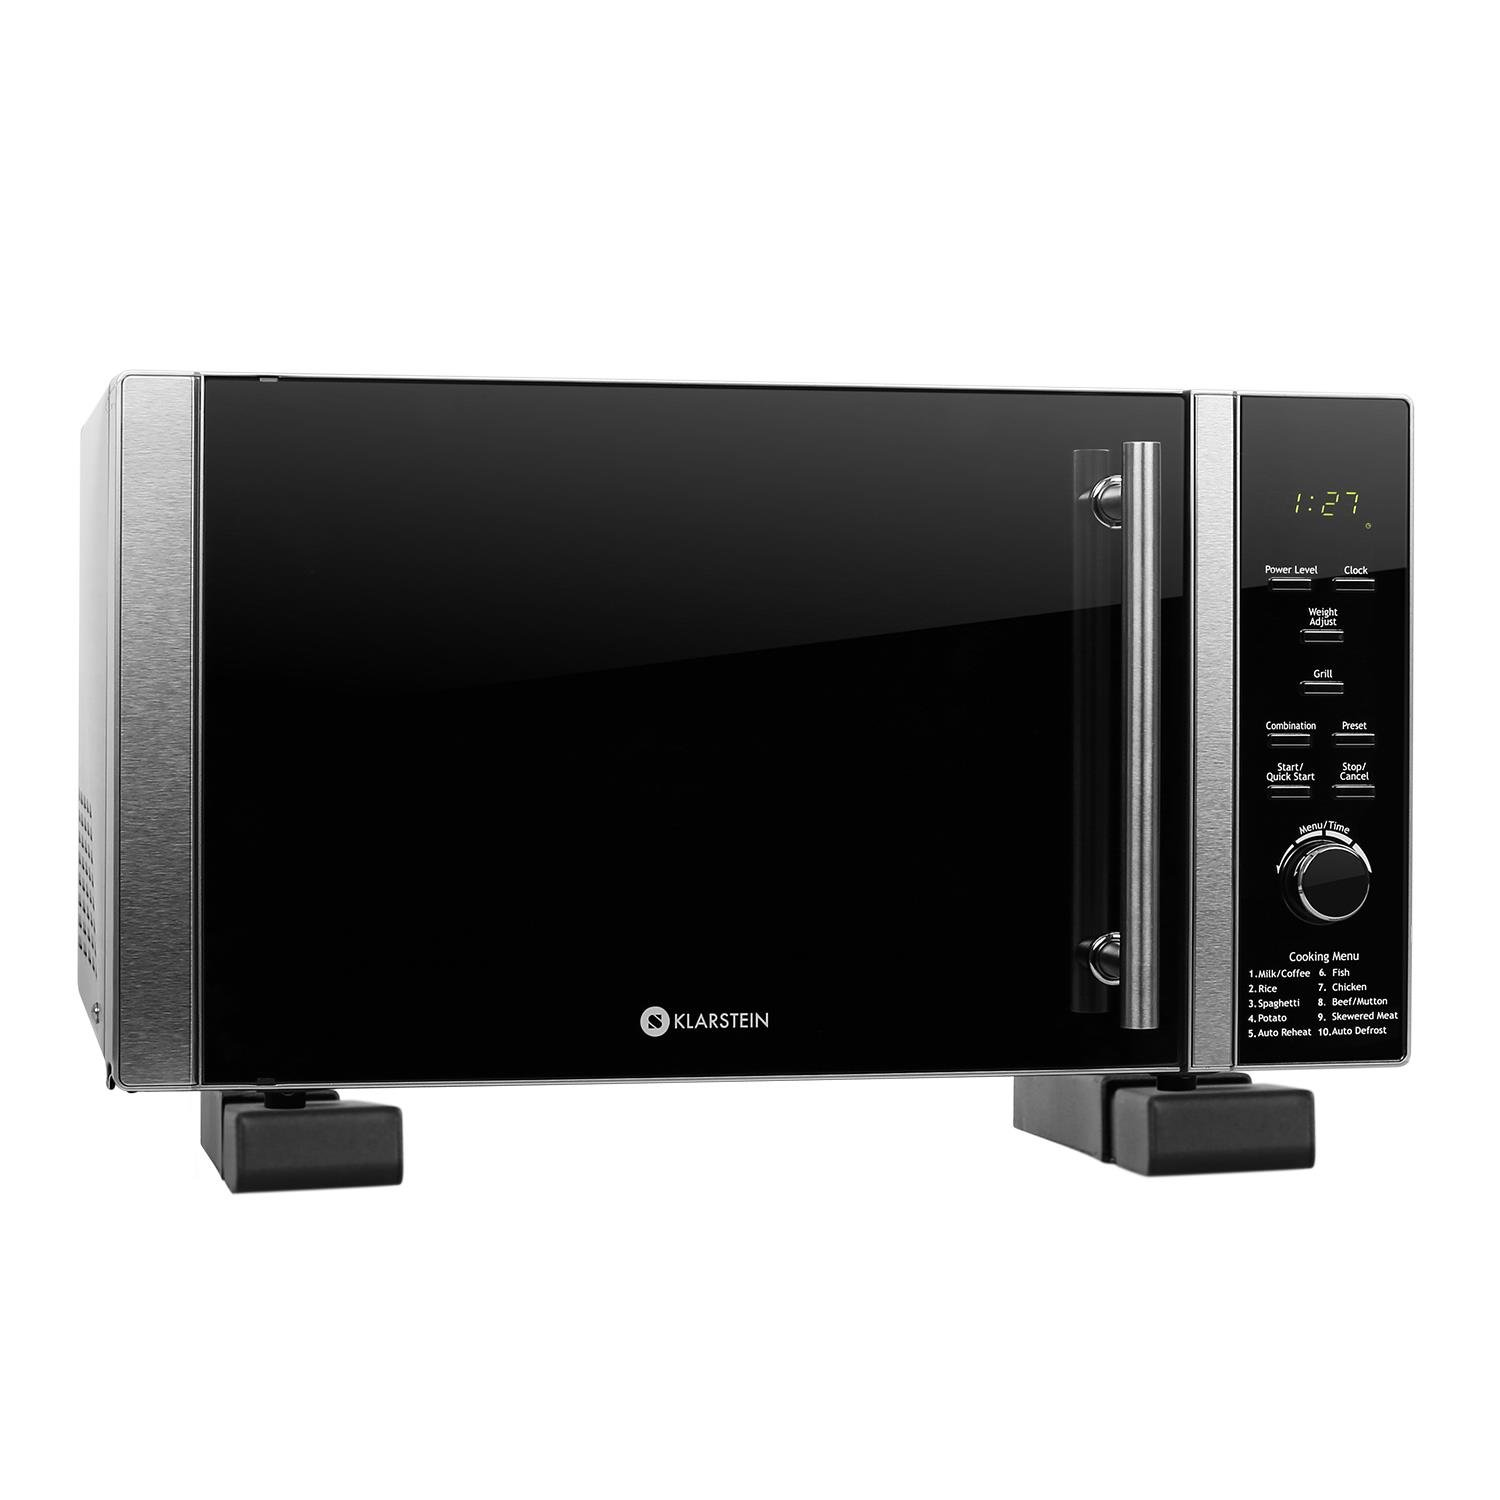 Klarstein Luminance Prime Compact Microwave with Grill (700W, 20L Capacity, 12 Automatic and Combination Cooking Programs) Silver TK23-Luminance-Prime